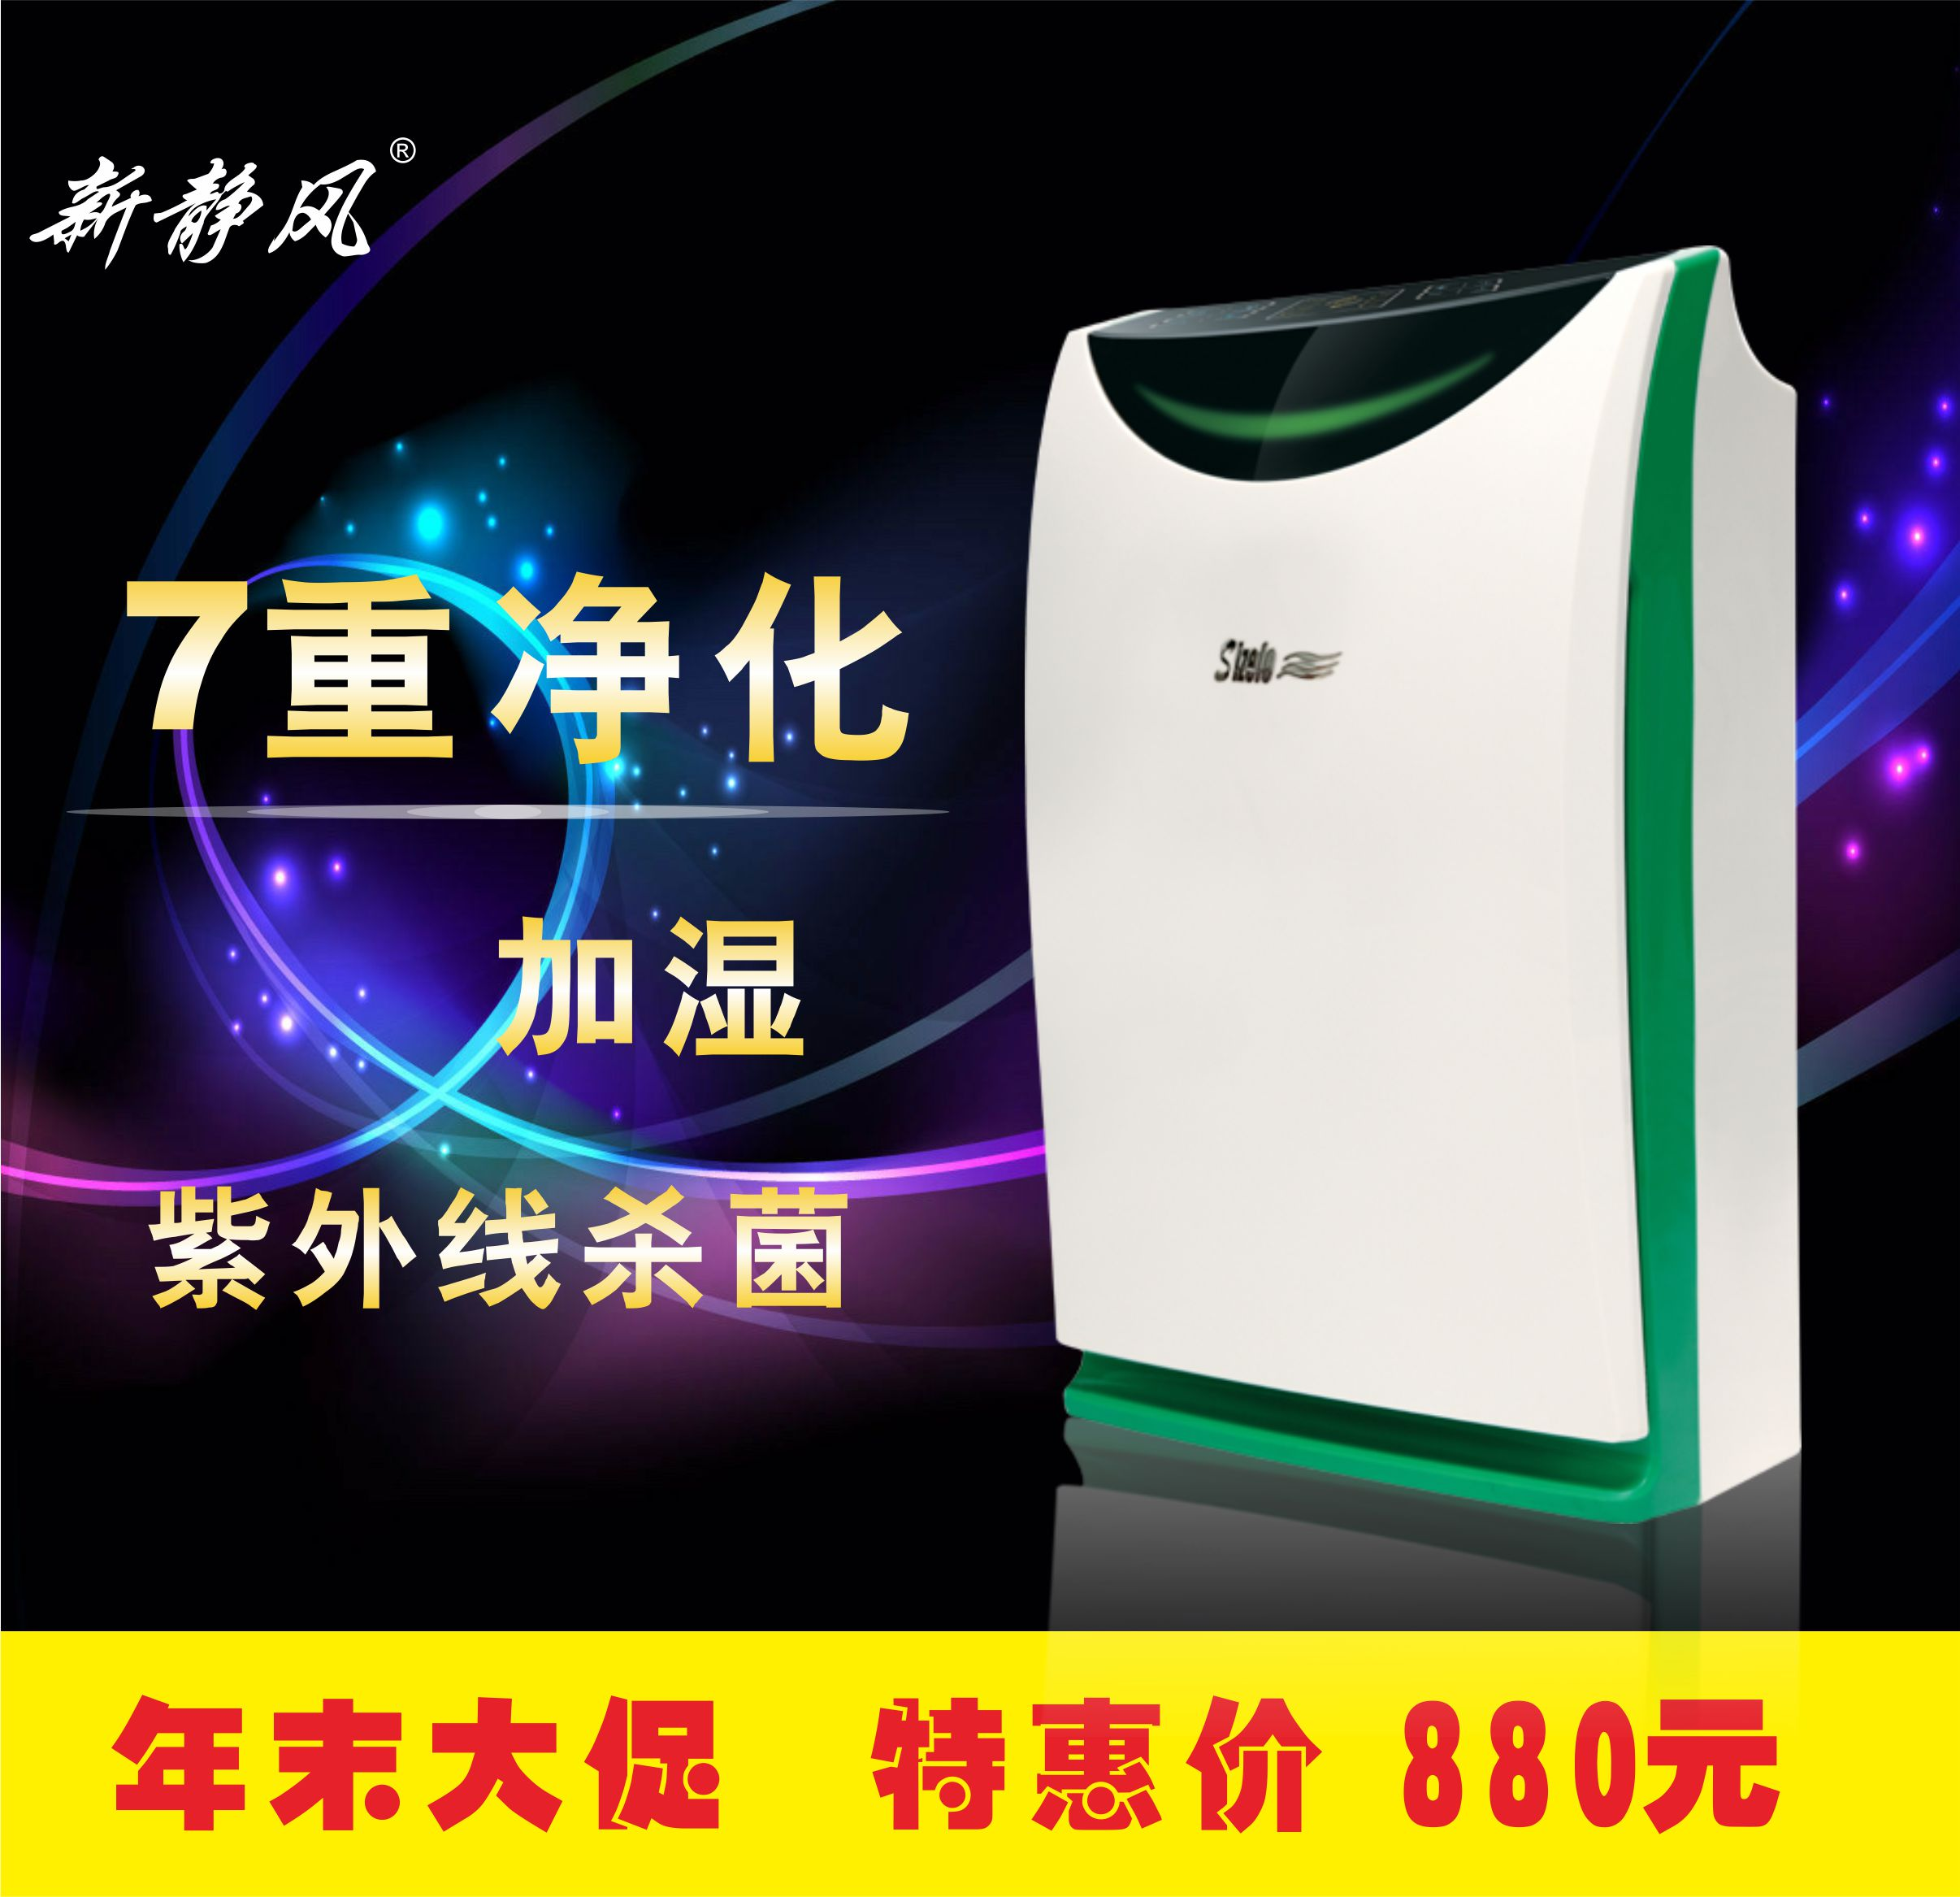 New static air humidifying air purifier for removing formaldehyde, PM2.5 haze and smoke